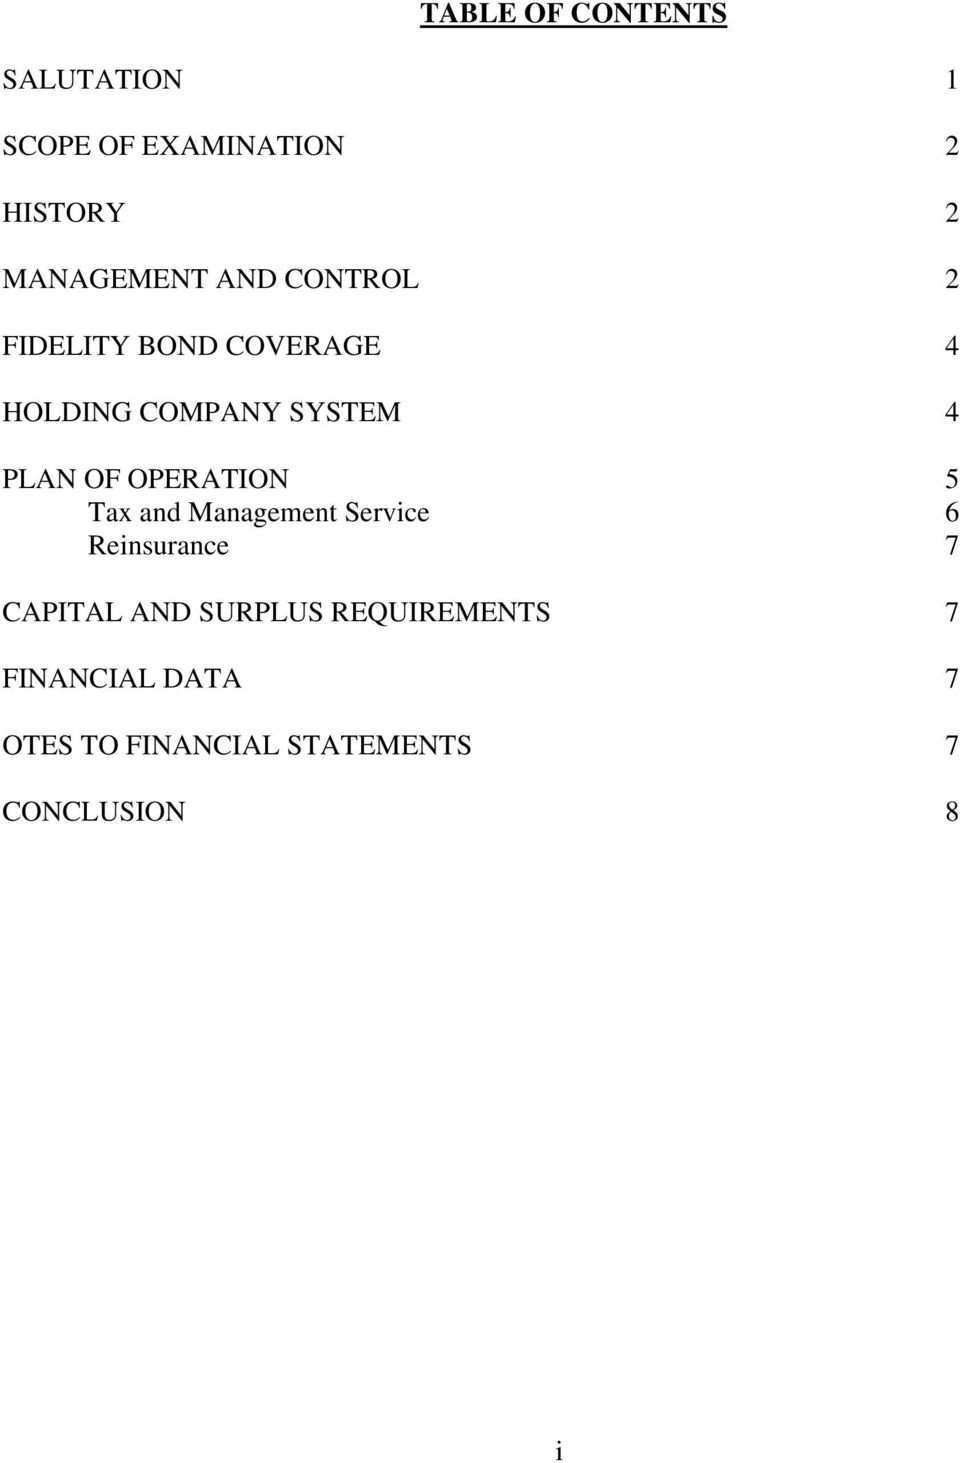 OPERATION 5 Tax and Management Service 6 Reinsurance 7 CAPITAL AND SURPLUS